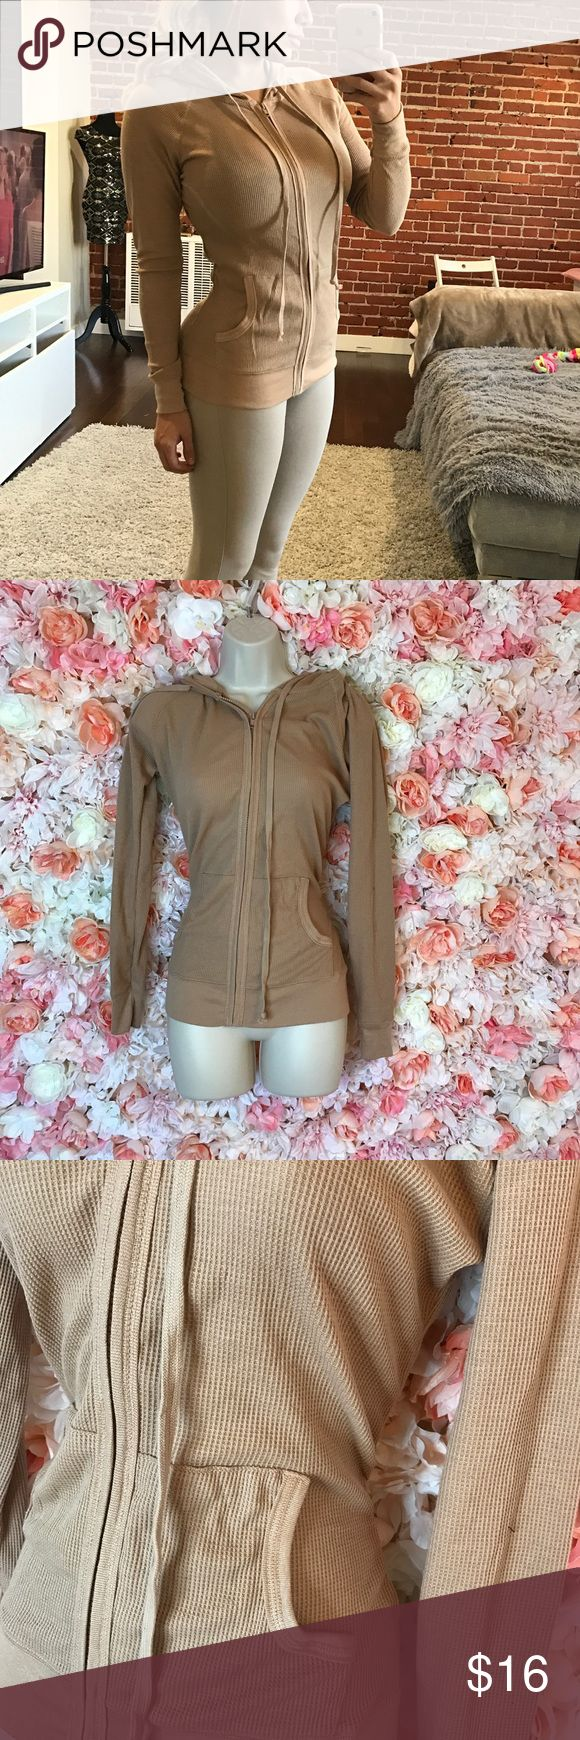 Nude zip up hoodie zip up hoodie cute fashionable and goes with everything Tops Sweatshirts & Hoodies